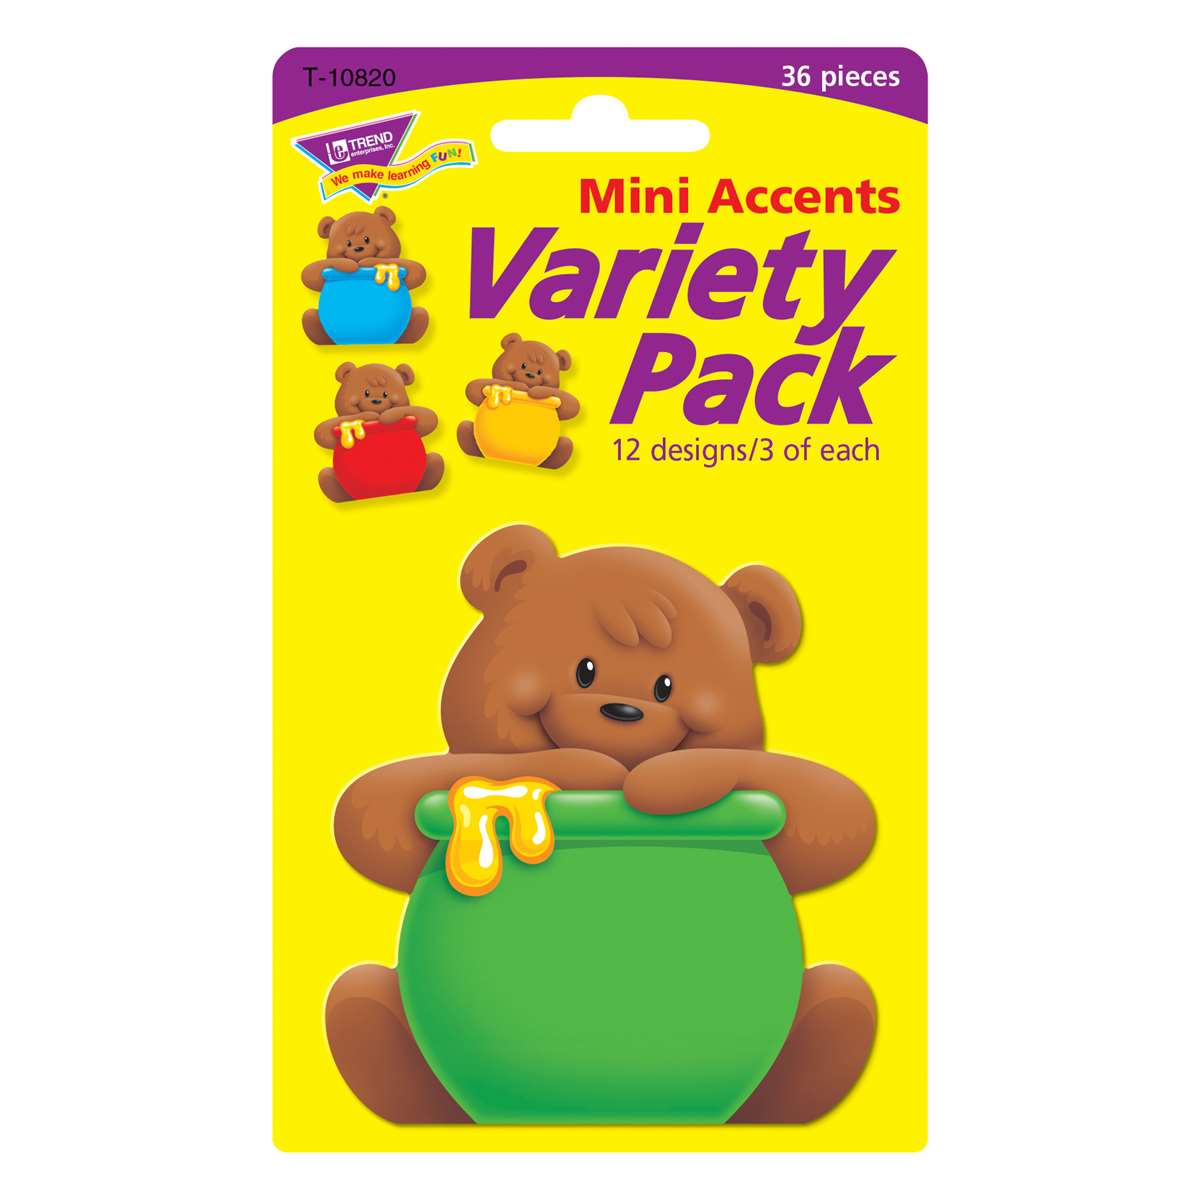 Classic Accents Mini Bears Variety Pack By Trend Enterprises Accents K12schoolsupplies Net